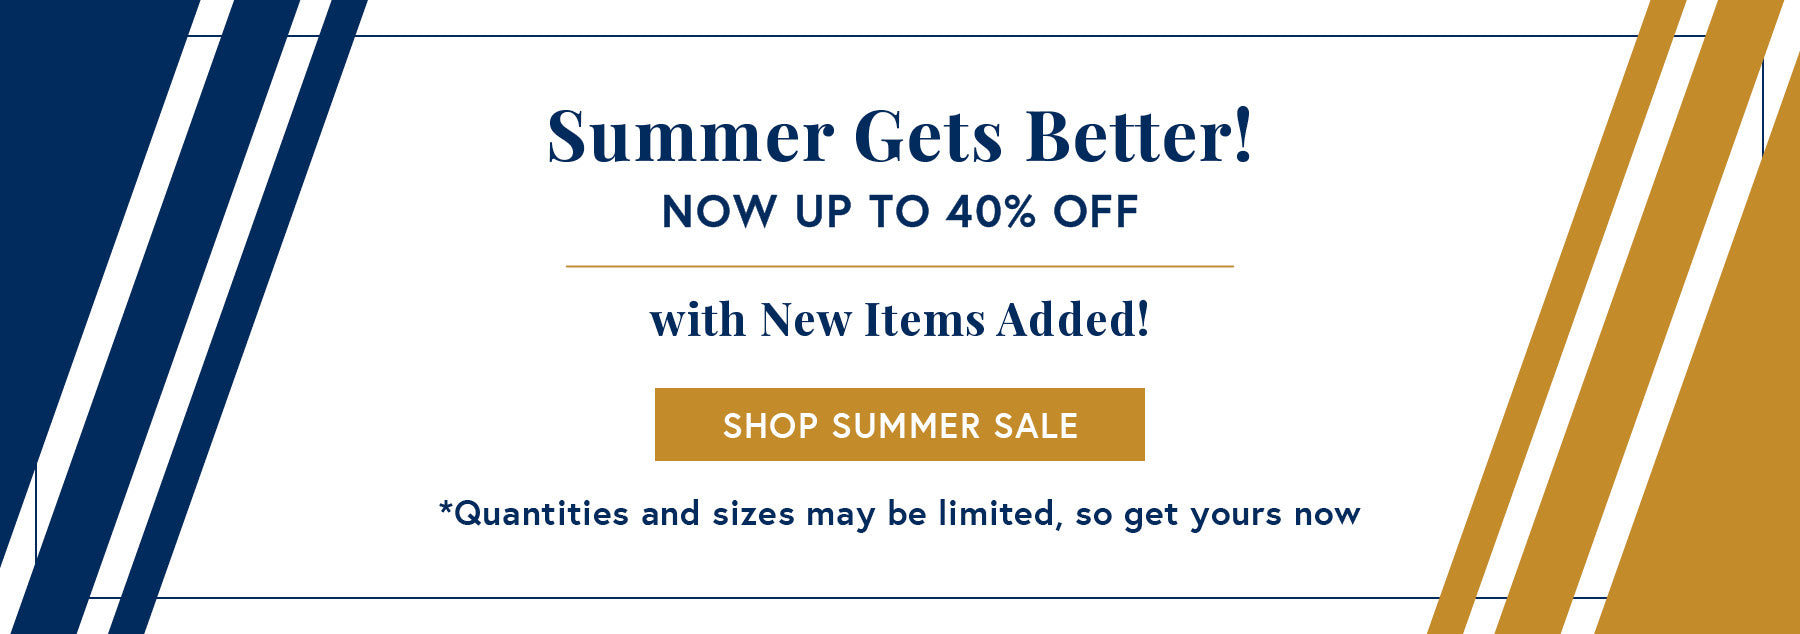 Beat the Heat Summer Sale - Up to 50% off